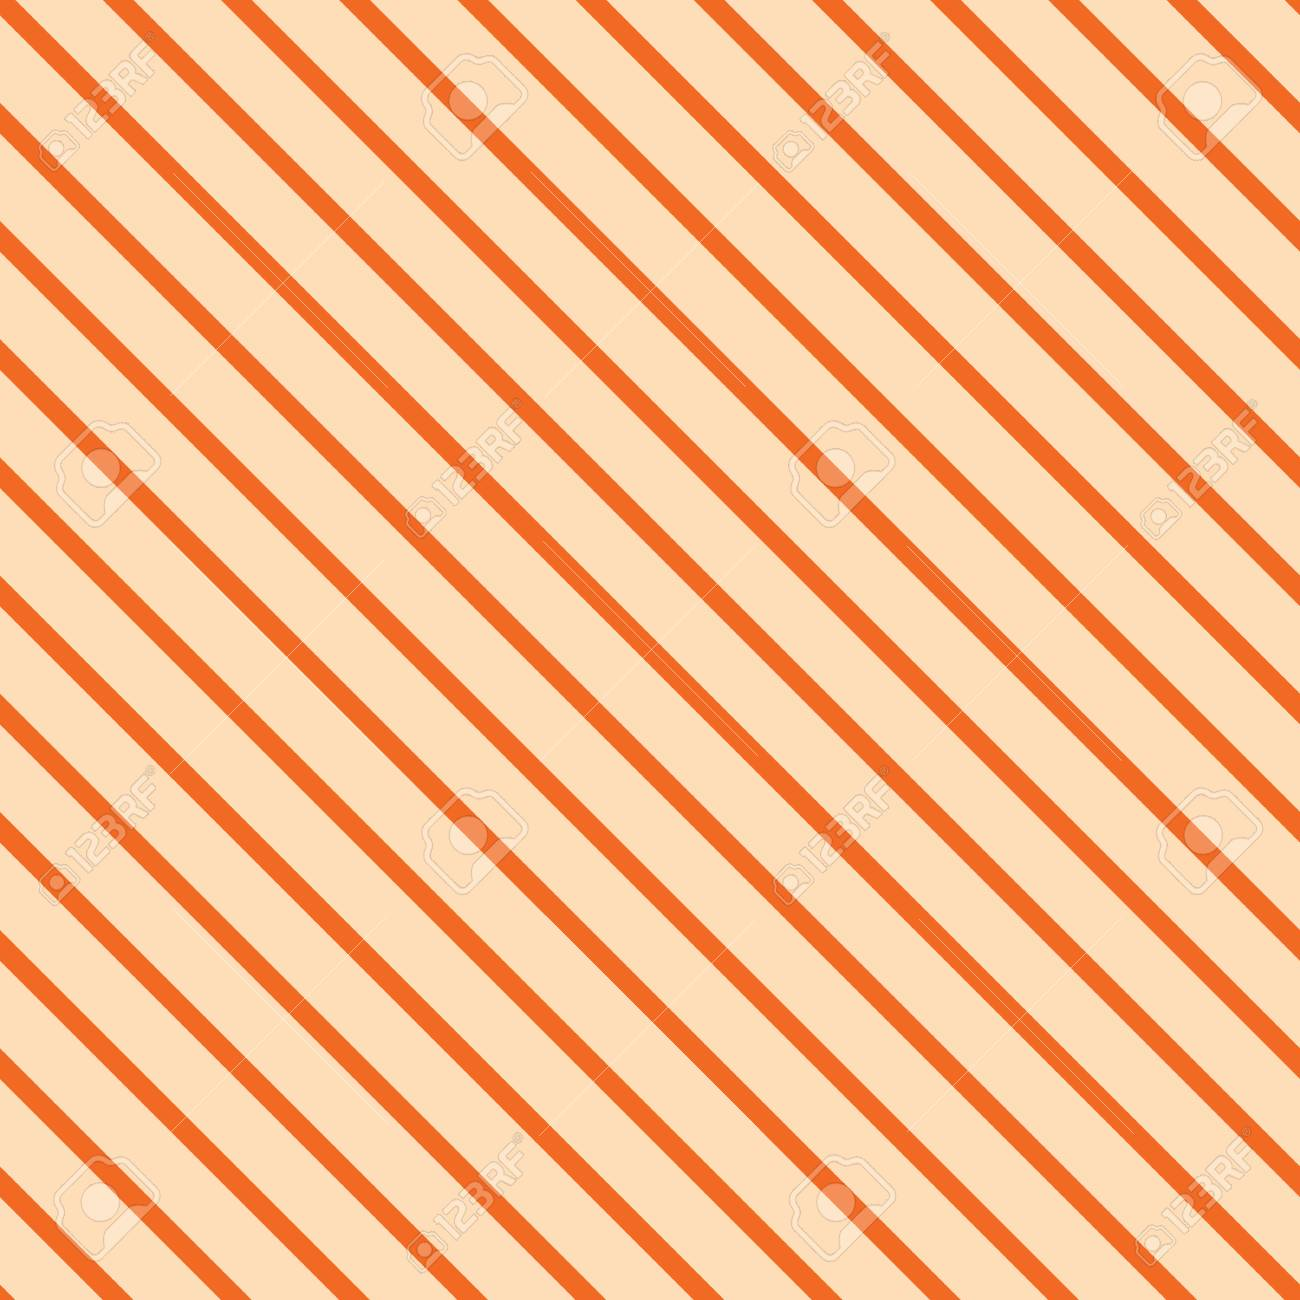 Halloween Diagonal Backgrounds Seamless Pattern In The 1300x1300